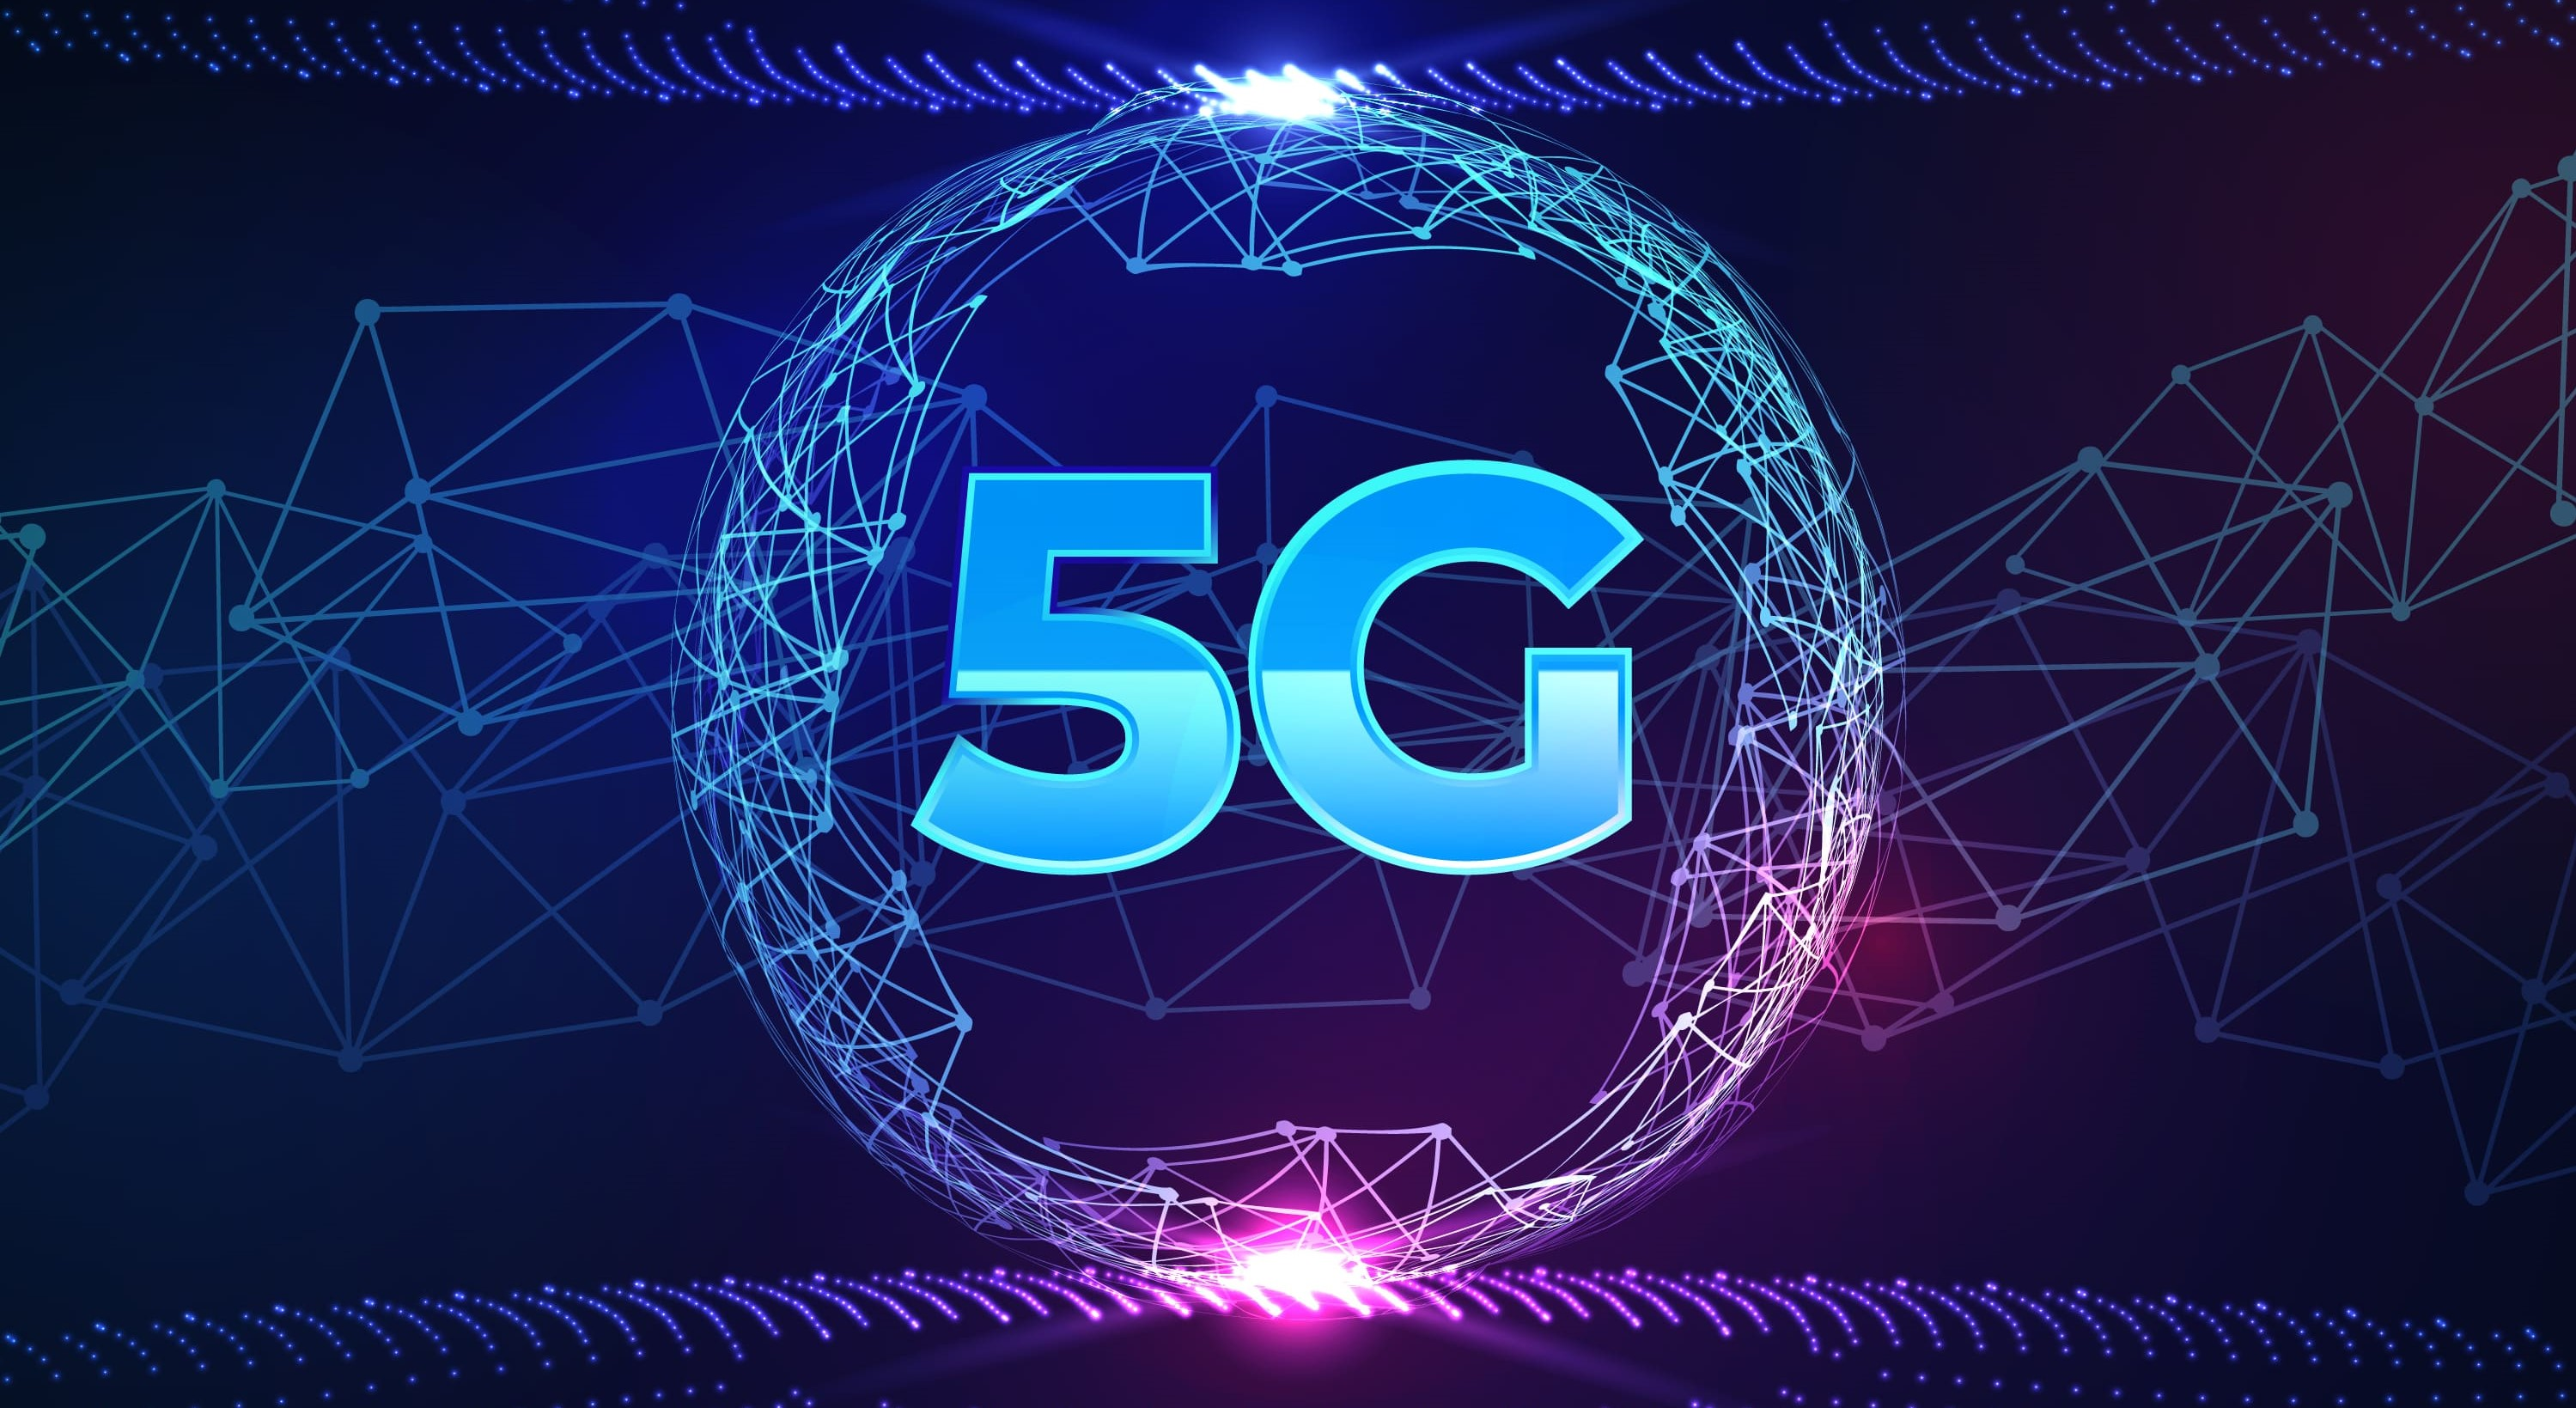 5G, 5G connectivity, 5G network, 5G generation, digital transformation, autonomous driving, future of networks, juristech, 5G technology